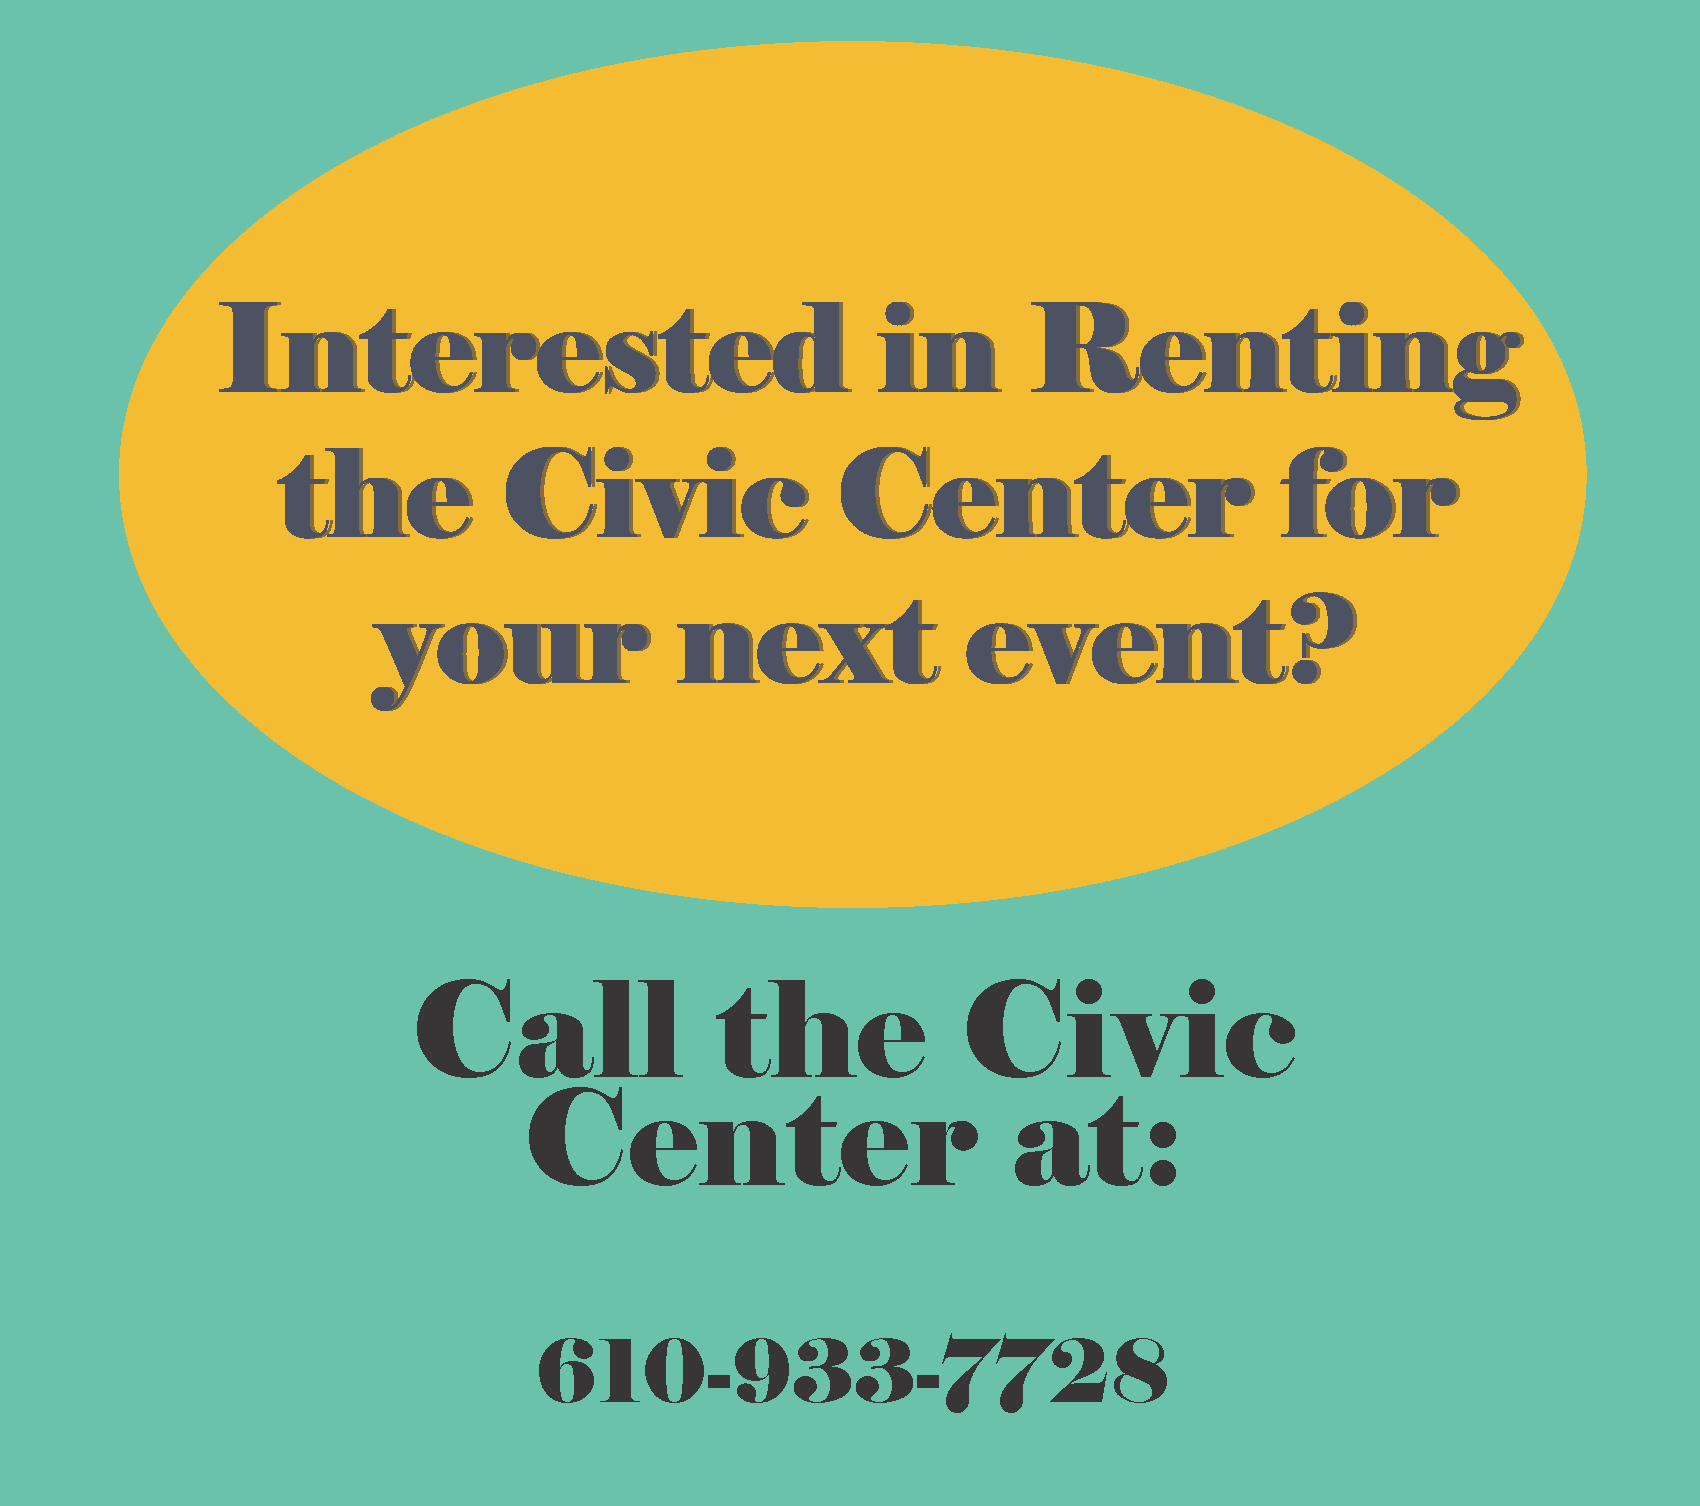 Interested in renting the Civic Center for your next event, call Recreation at 610-933-7728